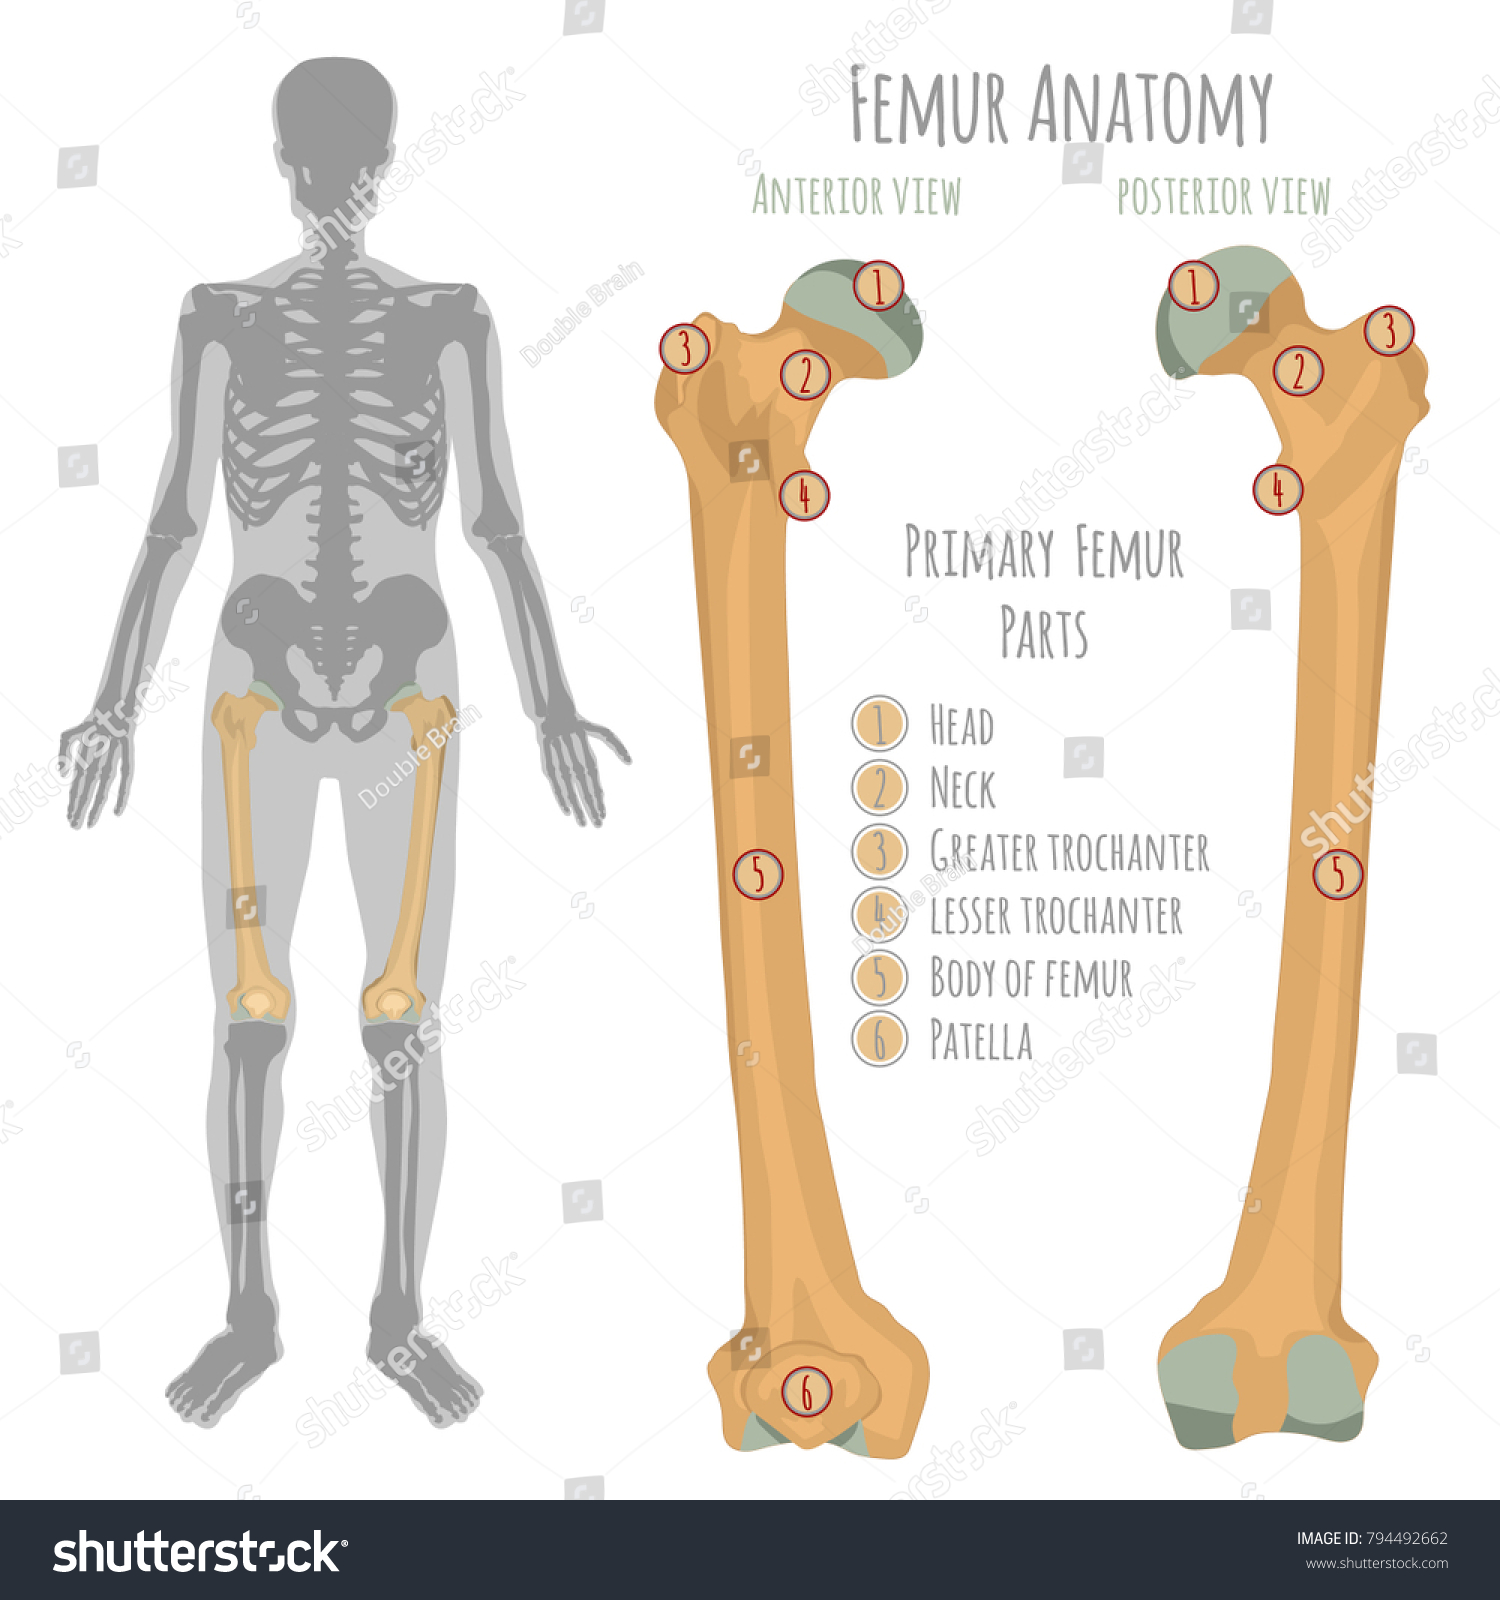 Male Hip Bone Anatomy Anterior View Stock Vector (Royalty Free ...